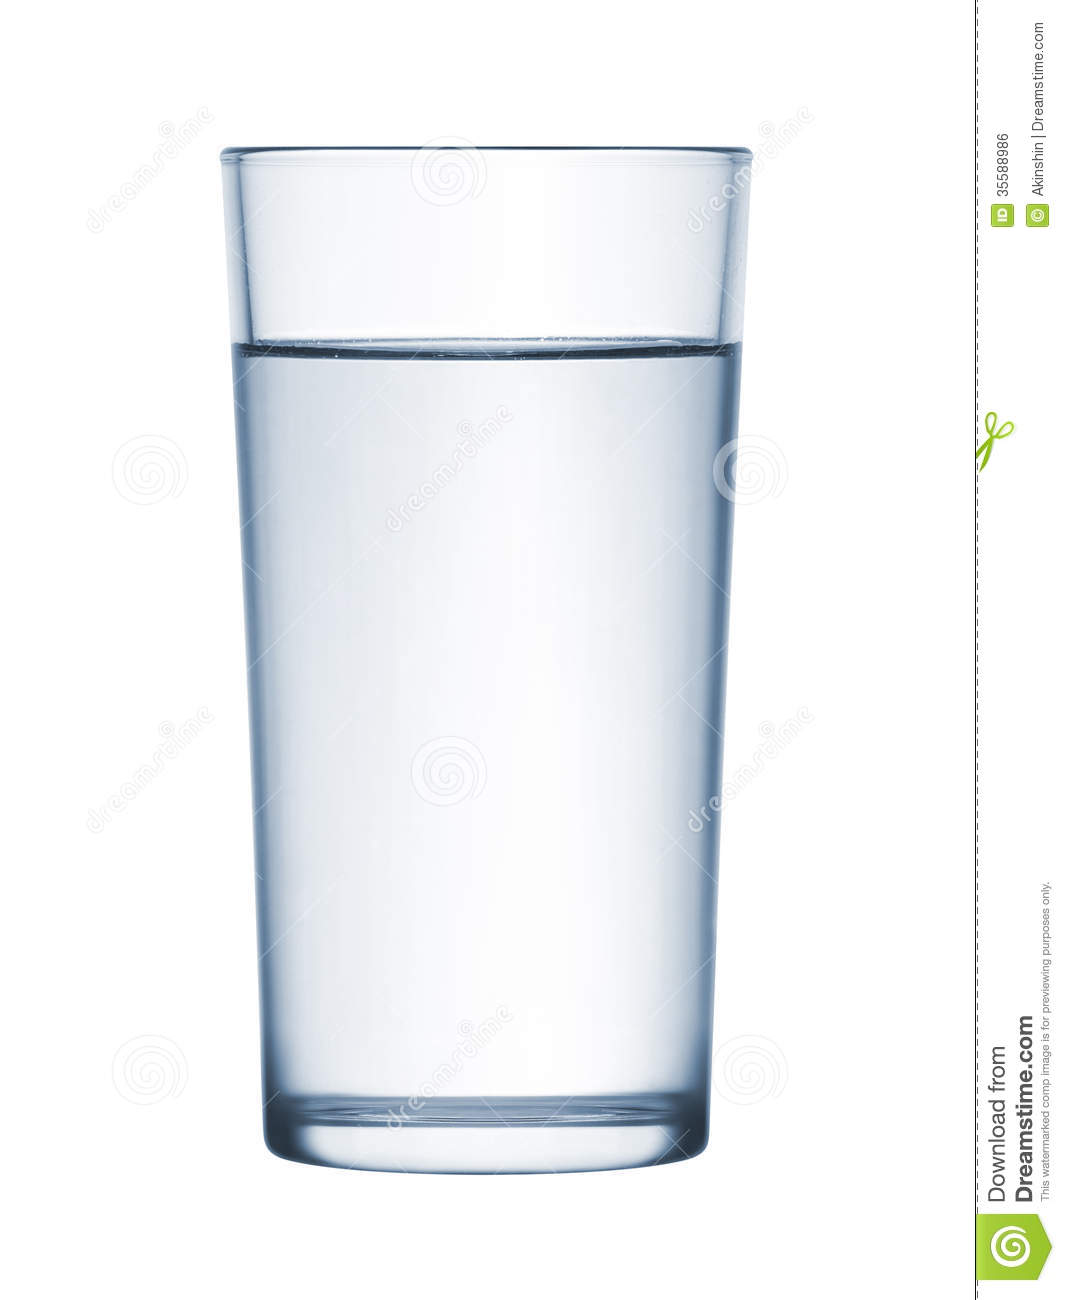 Glass Of Water Royalty Free Stock Image - Image: 35588986